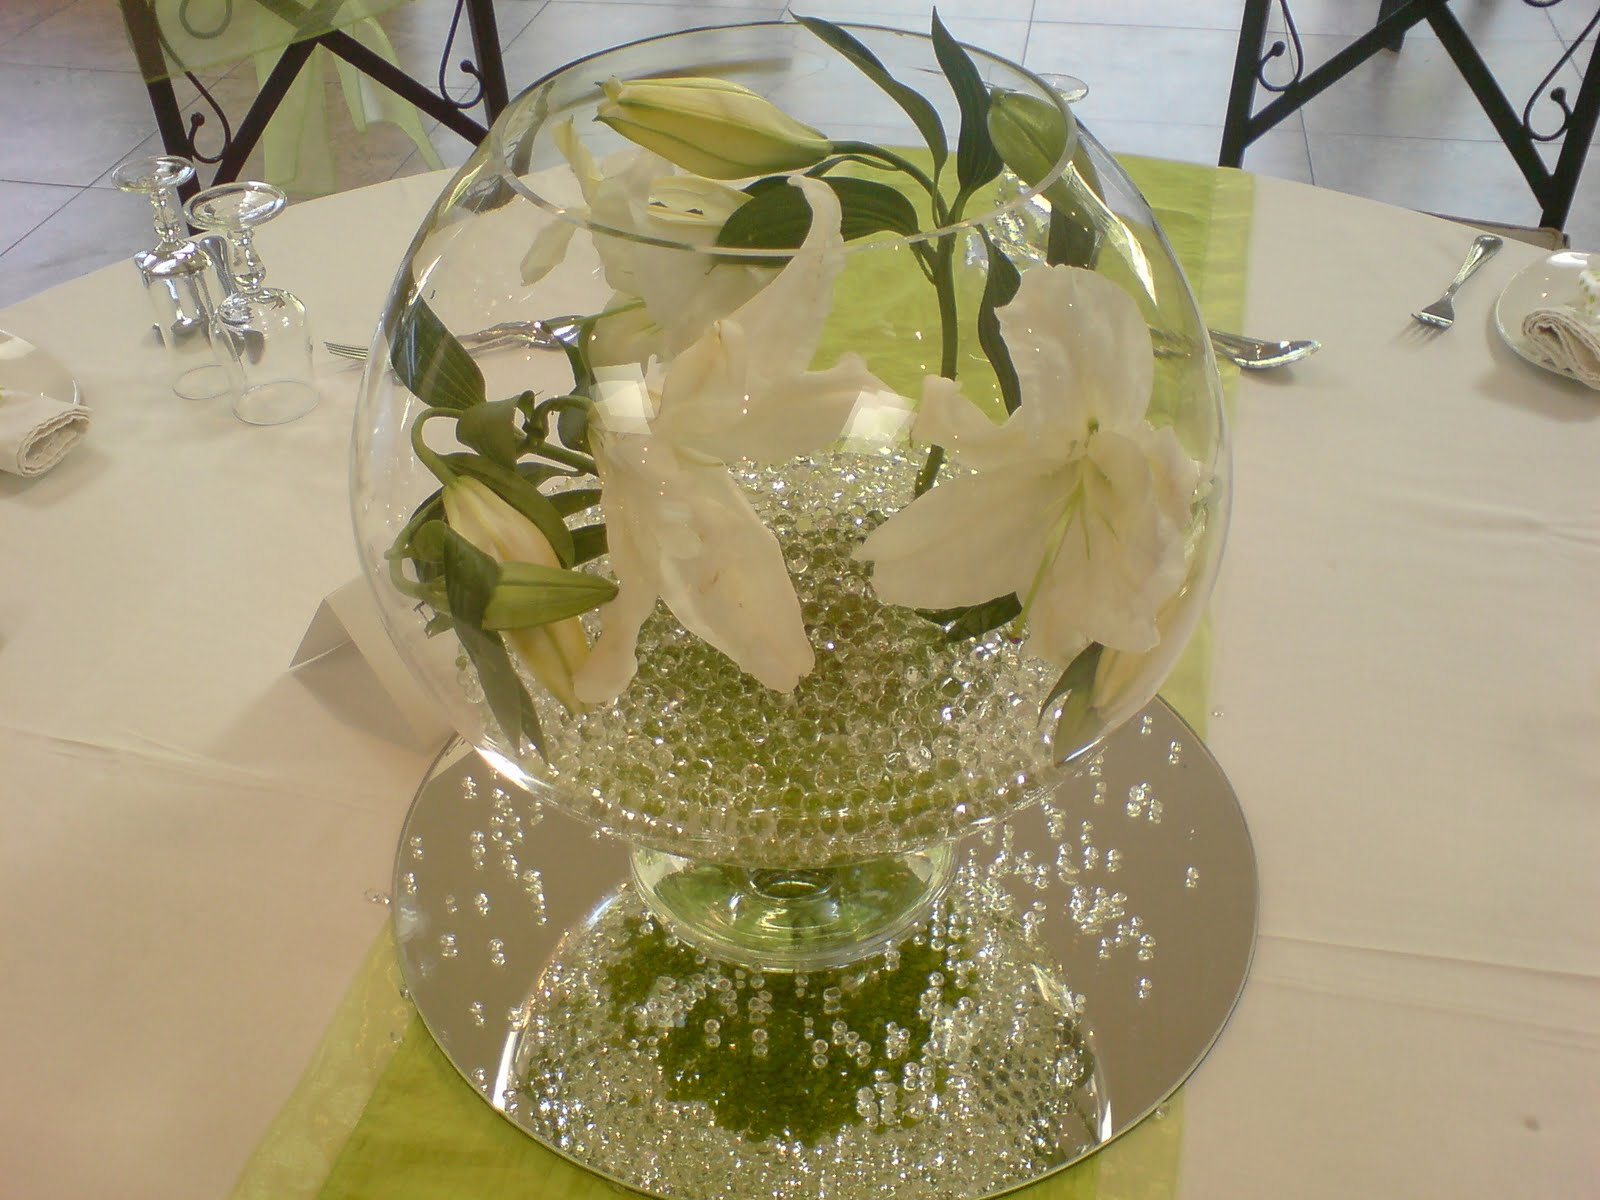 Ruby moon wedding planners christening baby shane 23 may 10 - Simple baptism centerpieces ...